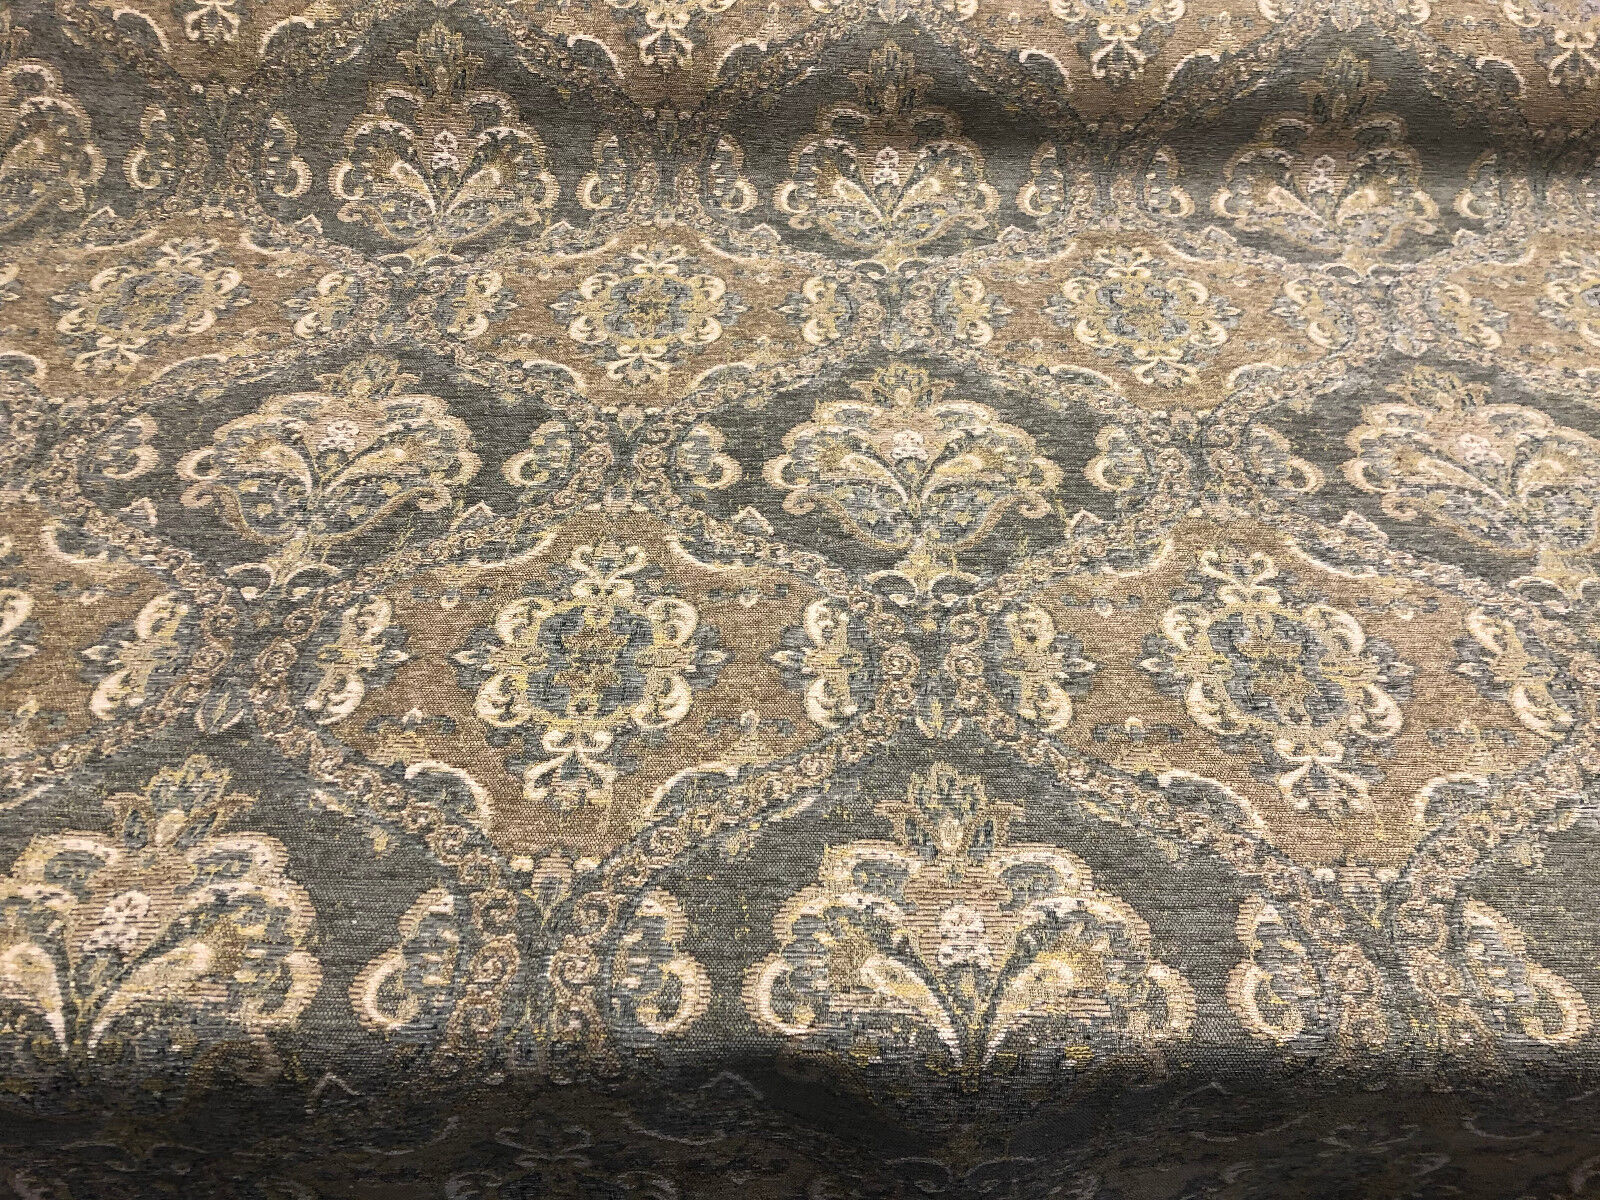 Abia Damask Twine Antique Upholstery Fabric by the yard sofa